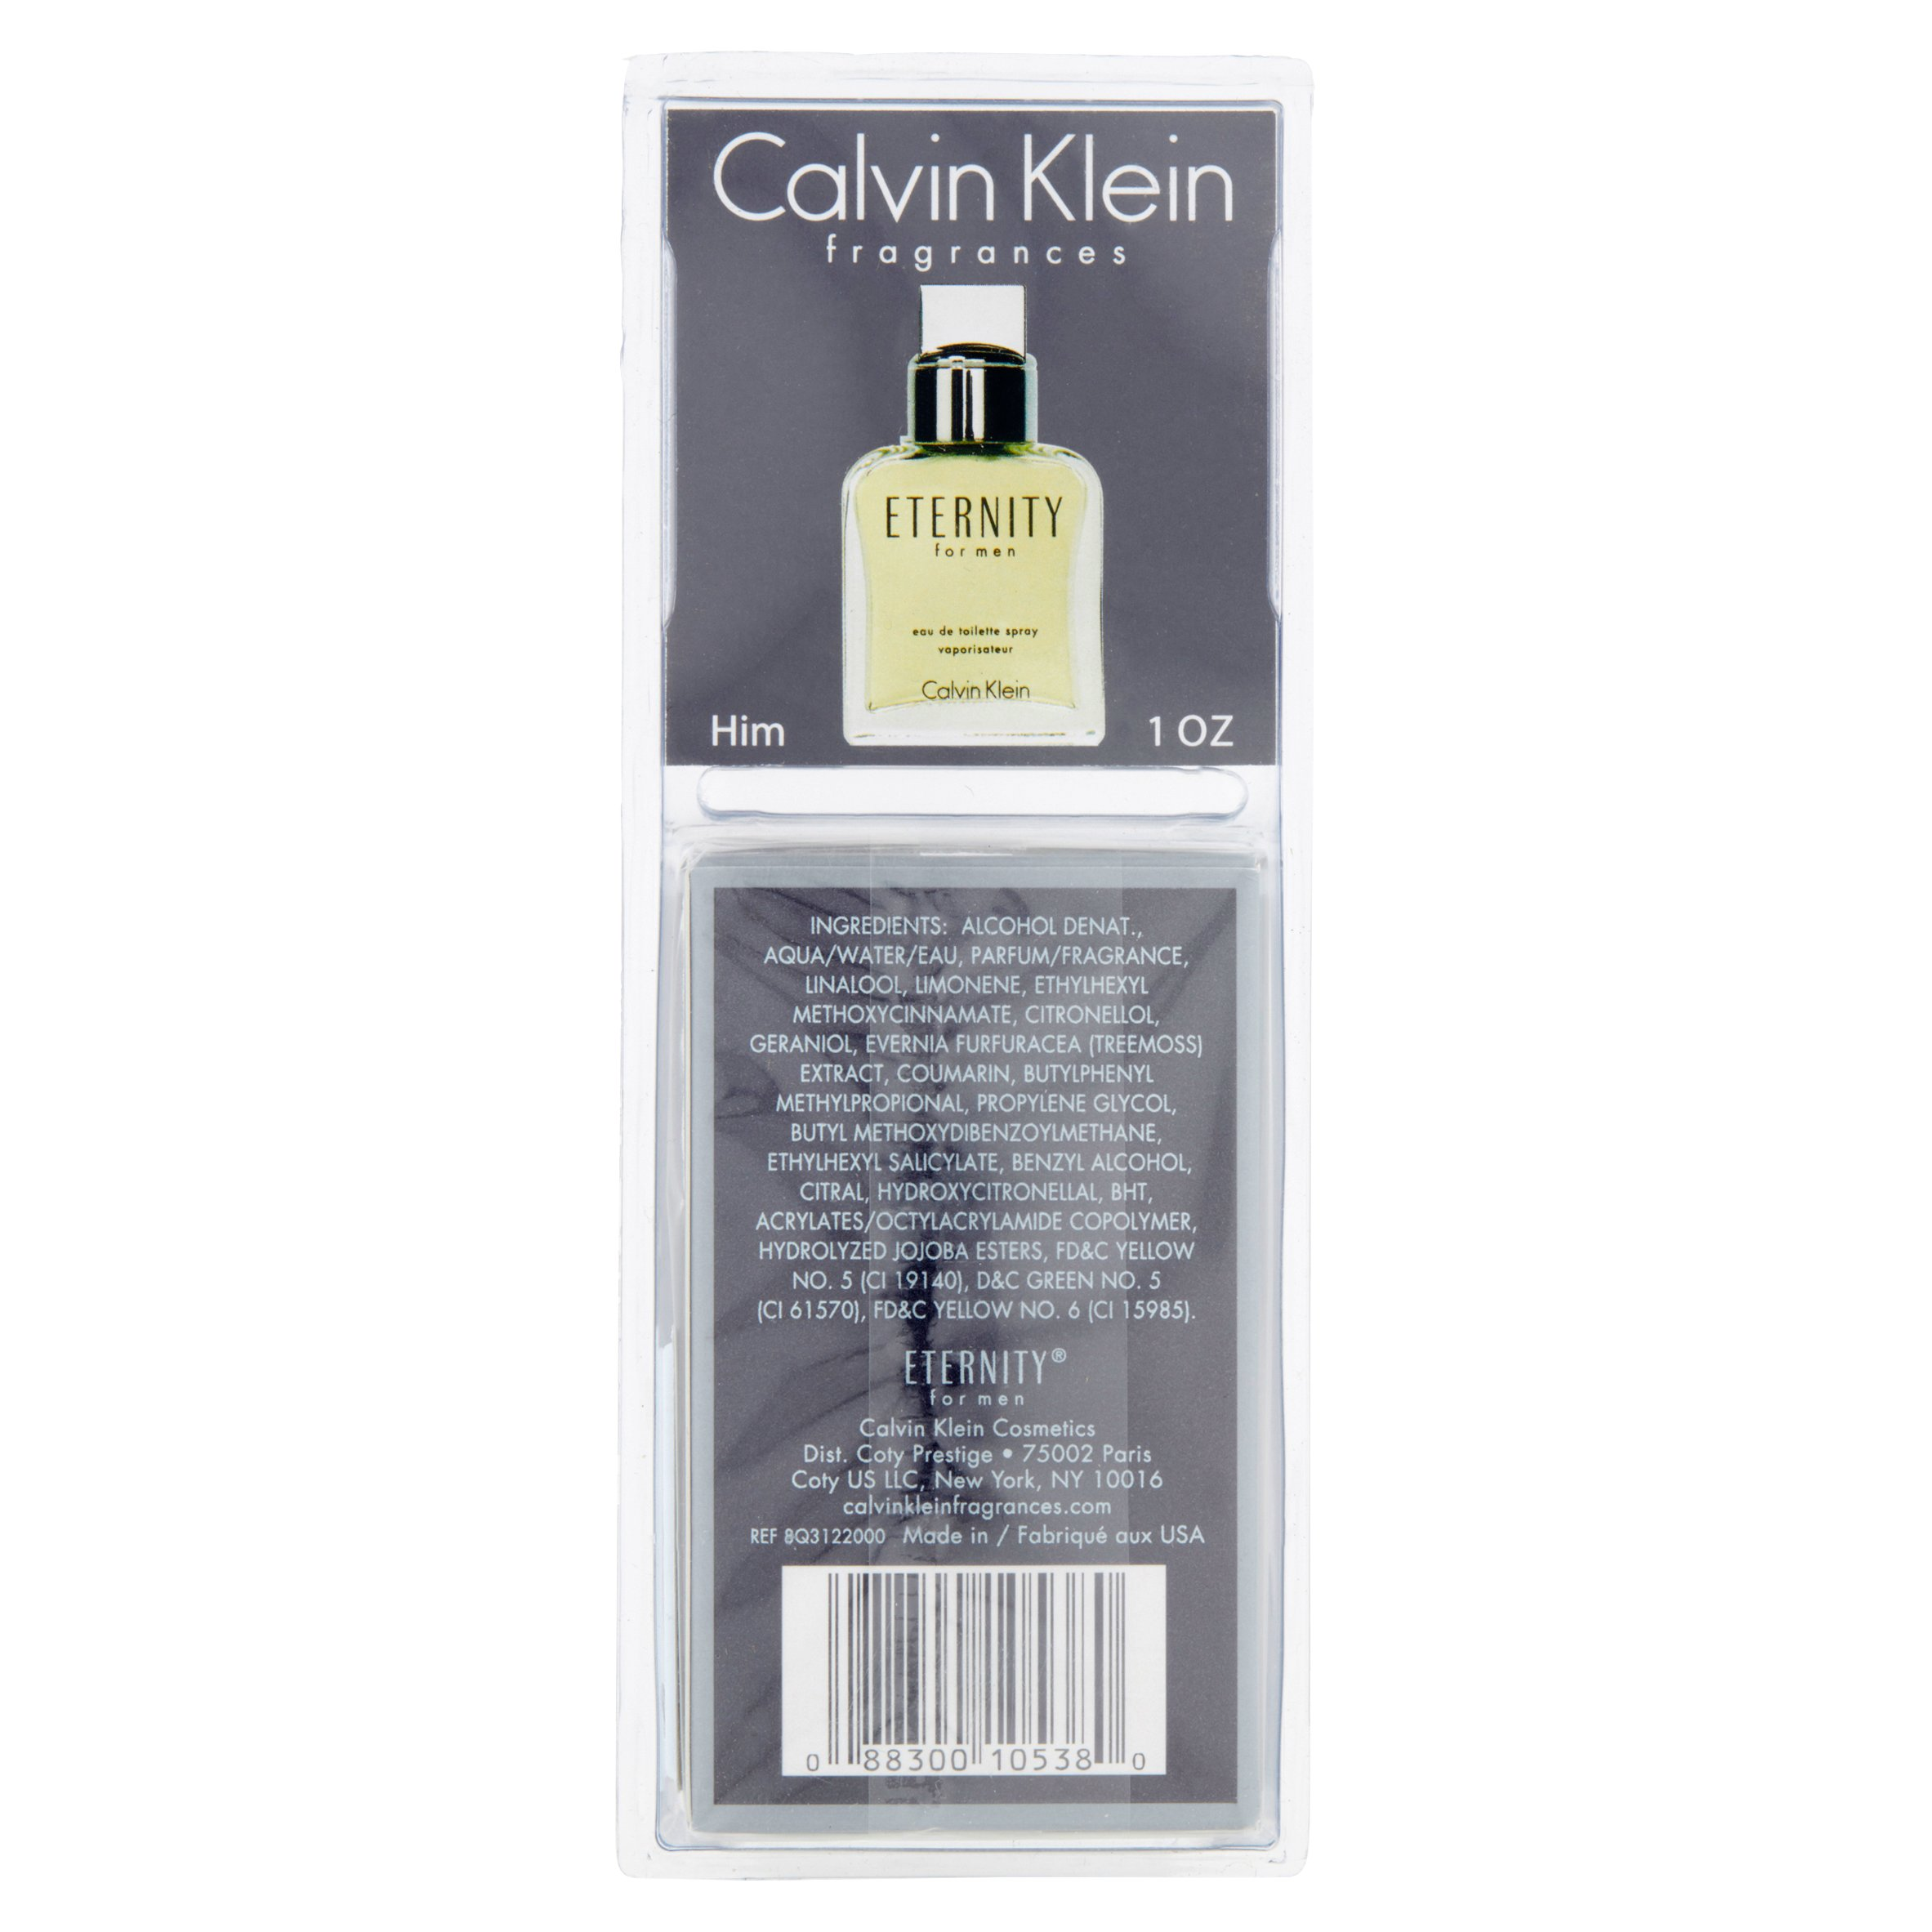 Calvin Klein Beauty Eternity Cologne For Men 1 Oz Man